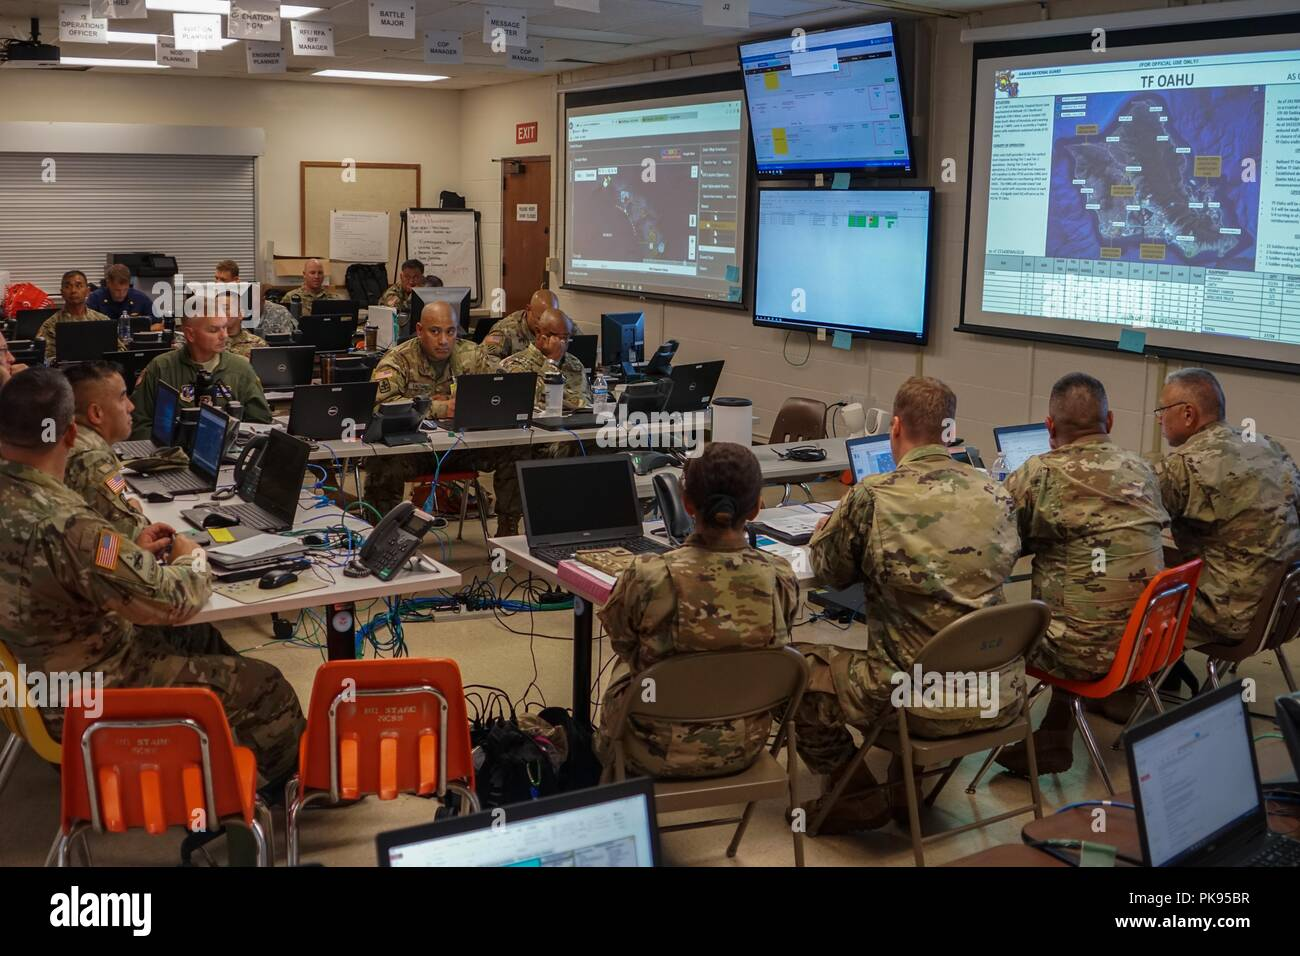 Service members with Joint Task Force 5-0 receive a daily commander's update brief, August 25, 2018 at the Hawaii Army National Guard Center at Diamond Head, Honolulu Hawaii, August 24, 2018. JTF 5-0 is a joint task force led by a dual status commander that is established to respond to the effects of Hurricane Lane on the state of Hawaii. The members of the task force remain committed to monitoring the effects and incidents across the state of Hawaii to respond to any requests made by Local and state authorities through FEMA. () - Stock Image